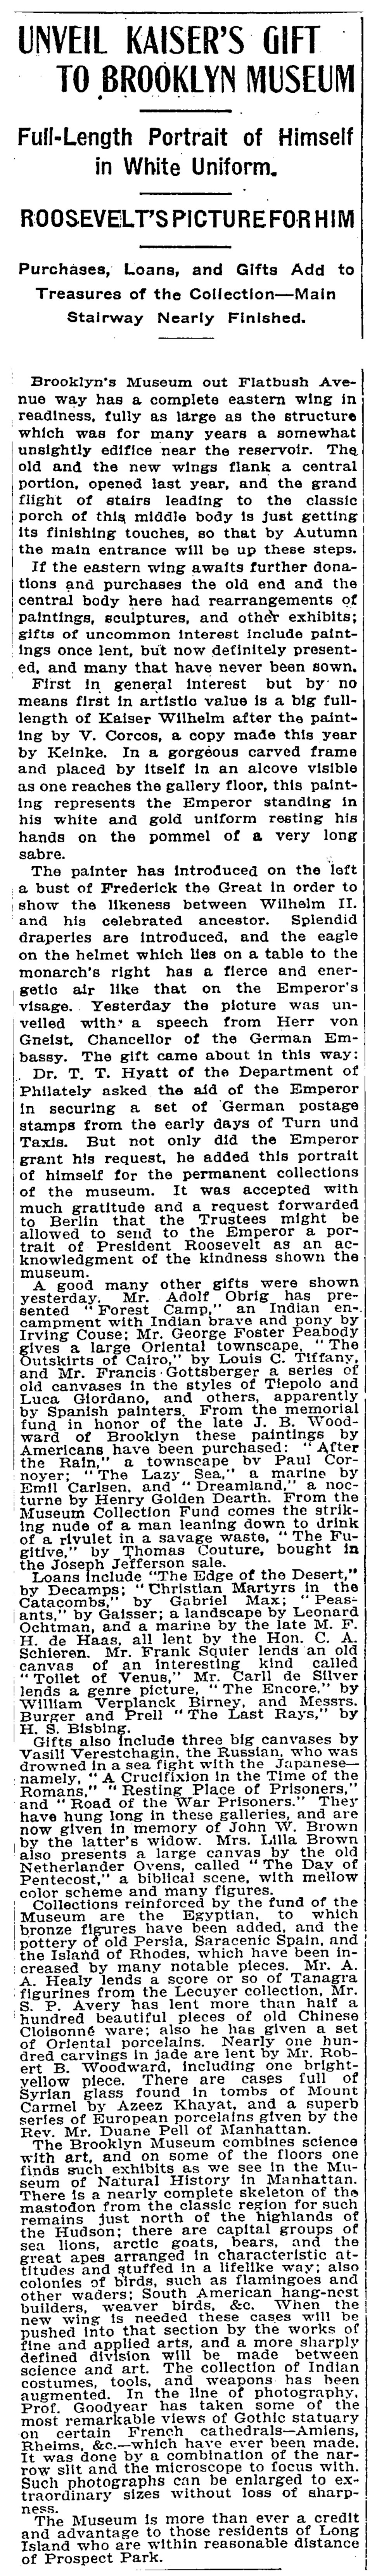 """The New York Times, New York, NY, """"Unveil Kaiser's Gift To Brooklyn Museum"""", June 17, 1906, not illustrated"""